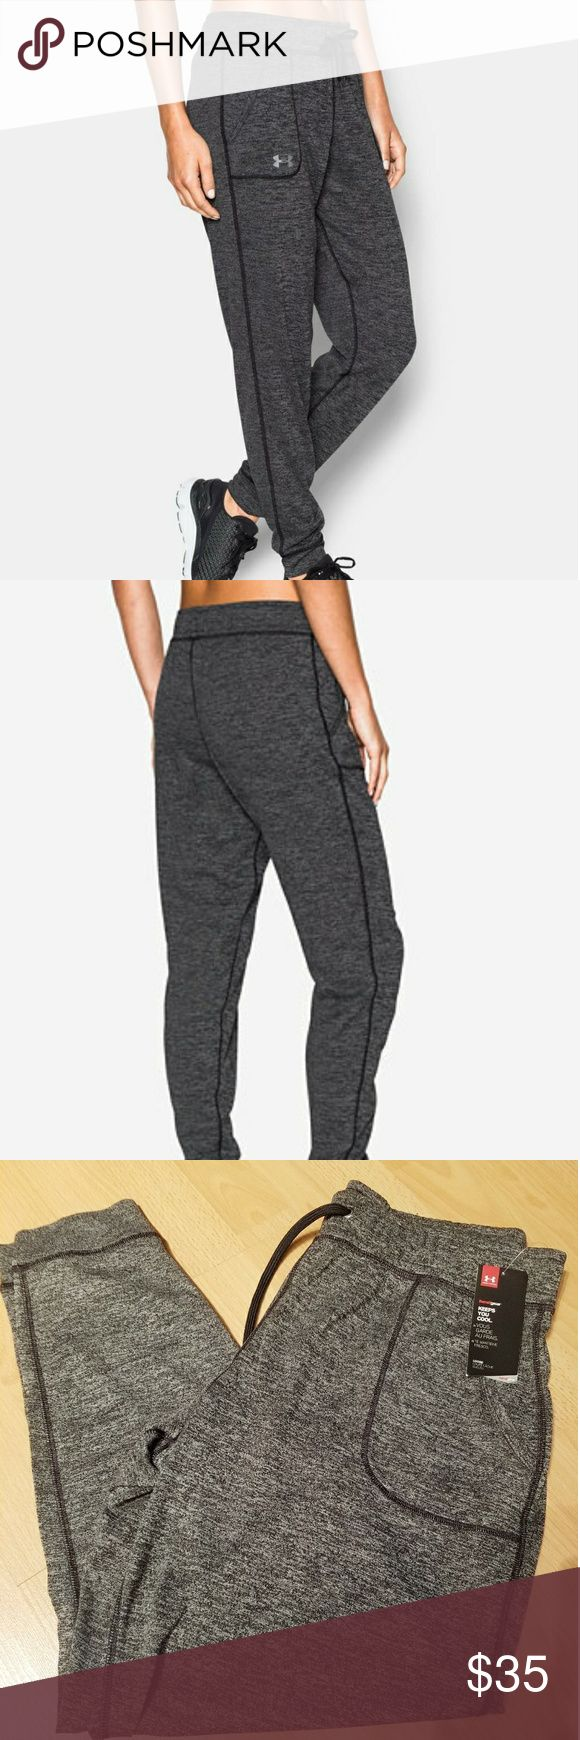 Under Armour Womens Twist Tech Gray Pants L Under Armour Womens Twist Tech Gray Pants Style #1269183-001   Size Large   Brand new with tags   Color - Heathered Gray   Super soft pants are comfortable and stylish all in one.   Thanks for looking! Under Armour Pants Track Pants & Joggers